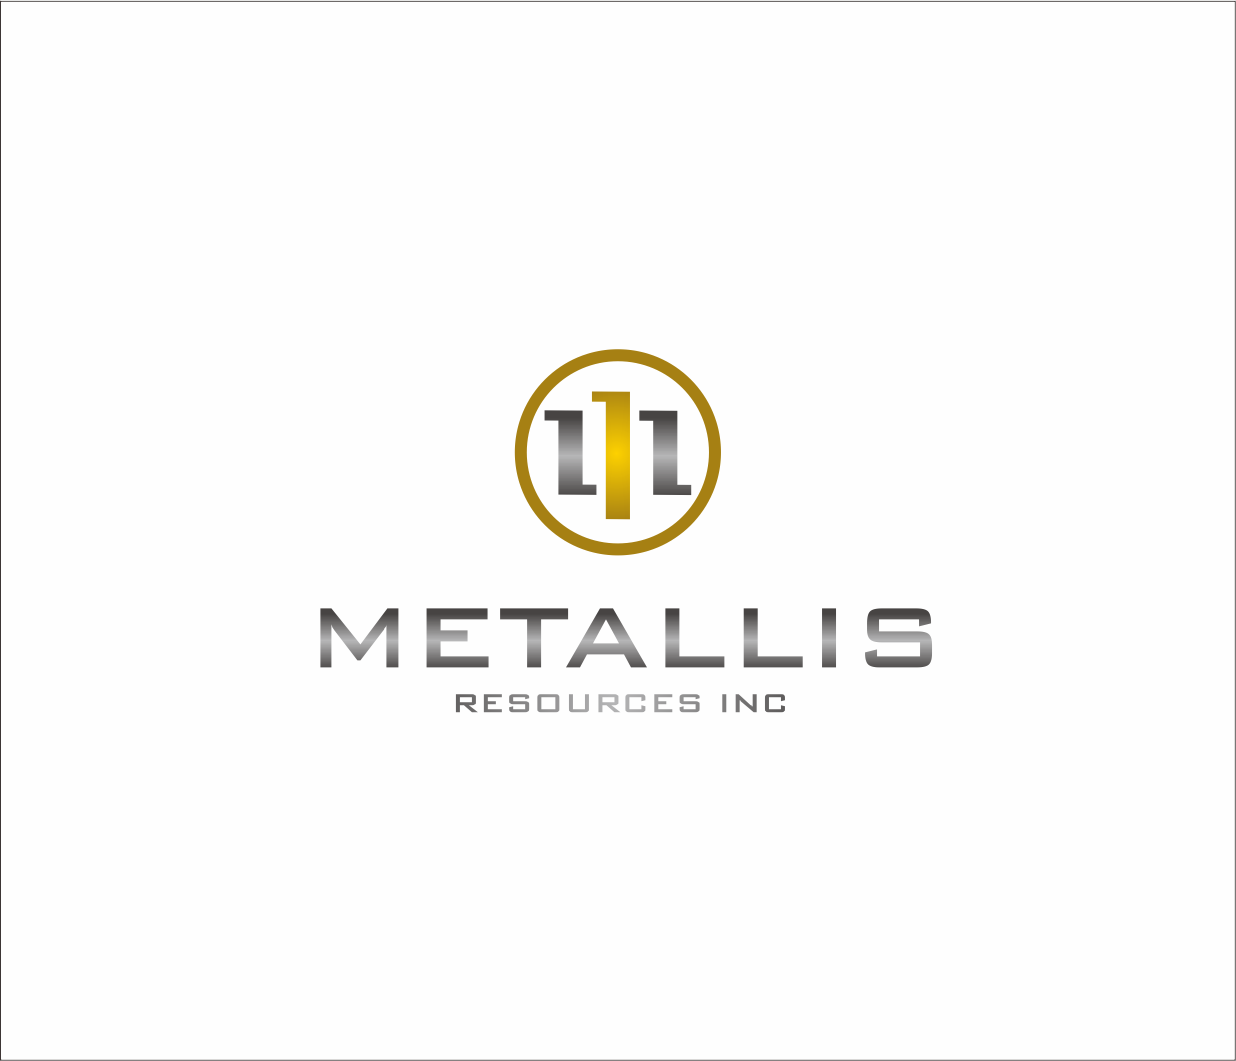 Logo Design by Armada Jamaluddin - Entry No. 147 in the Logo Design Contest Metallis Resources Inc Logo Design.